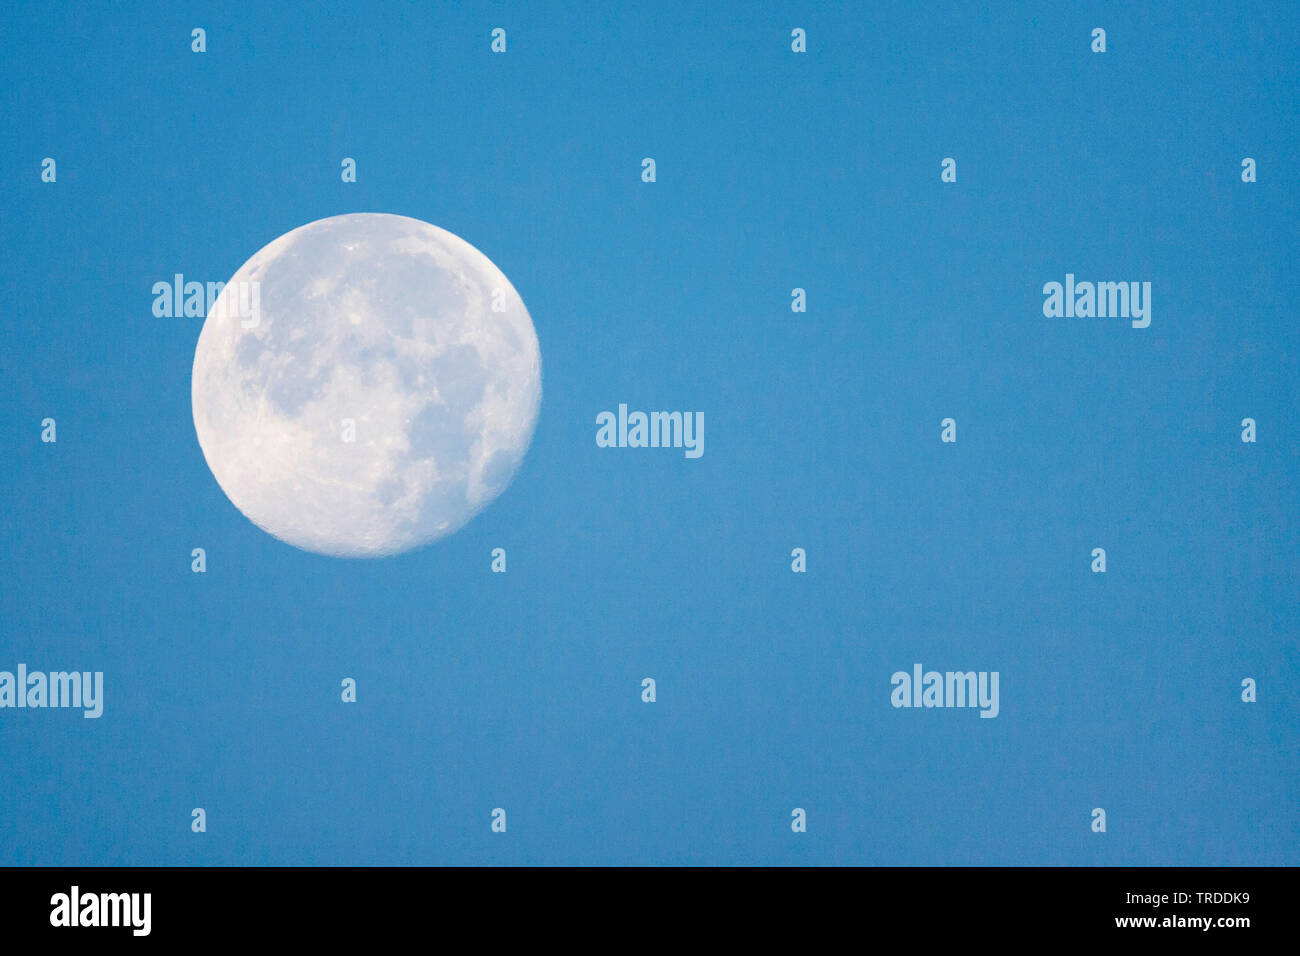 Mond am blauen Himmel, Niederlande, Suedholland, Katwijk aan Zee | moon in clear bly sky at daylight, Netherlands, South Holland, Katwijk aan Zee | BL - Stock Image